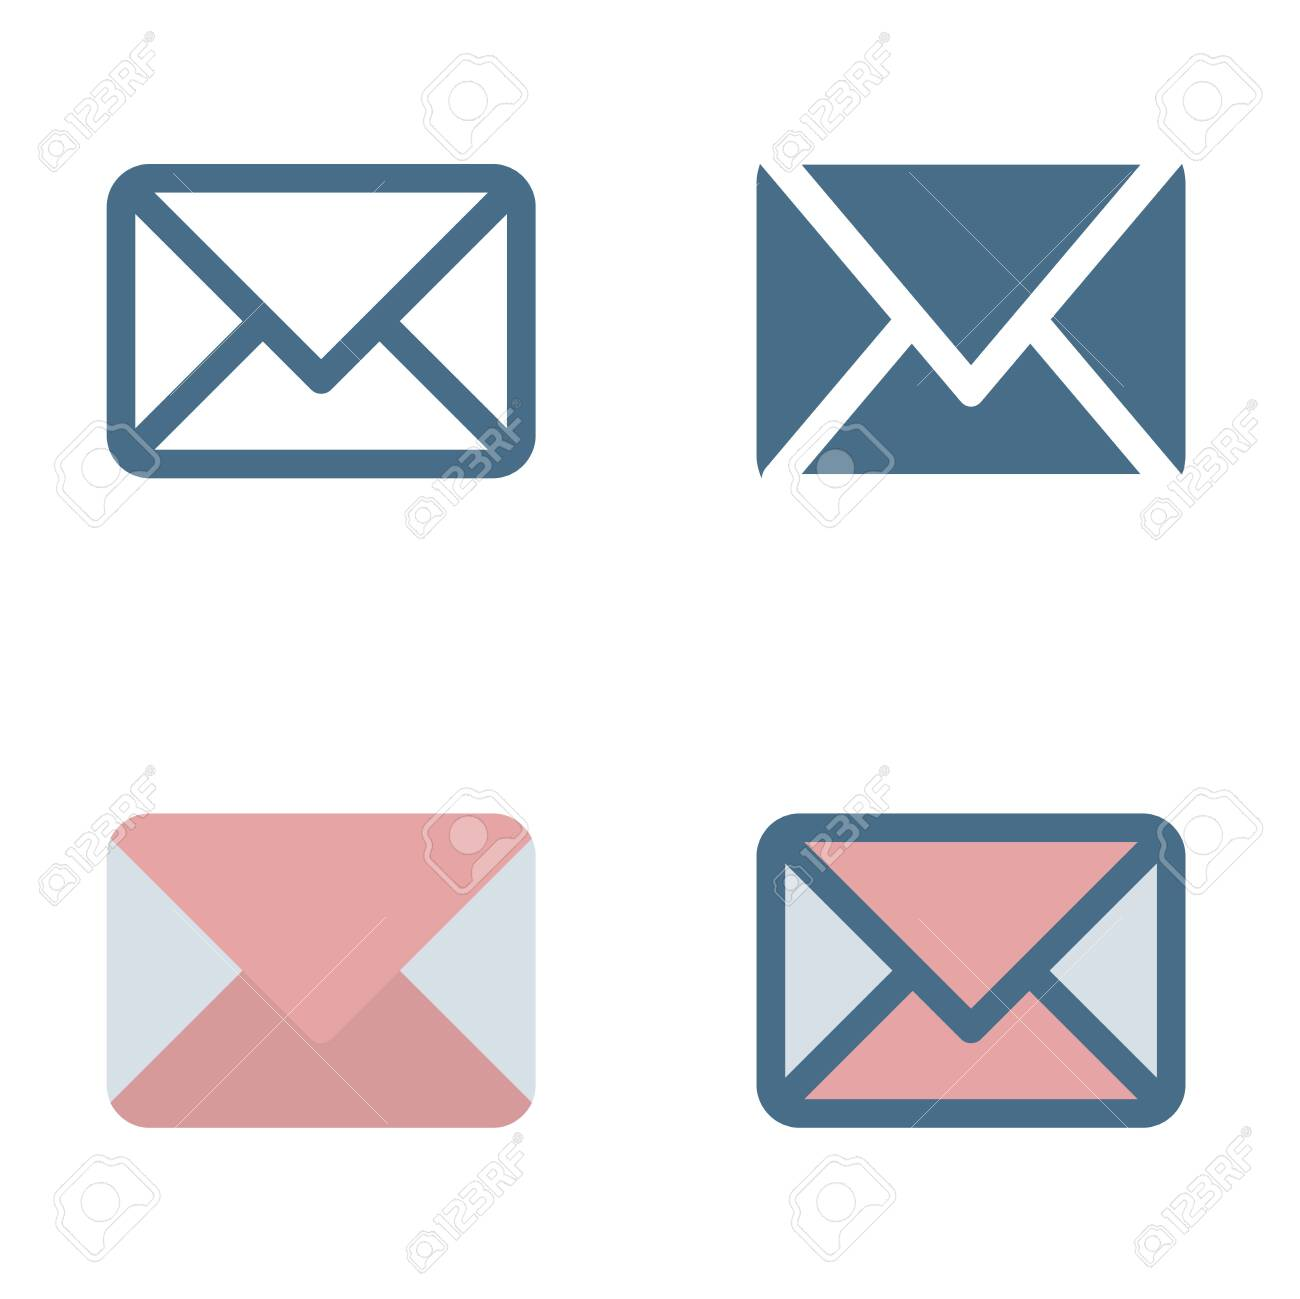 Email icon in isolated on white background. for your web site design, logo, app, UI. Vector graphics illustration and editable stroke. EPS 10. - 141788796